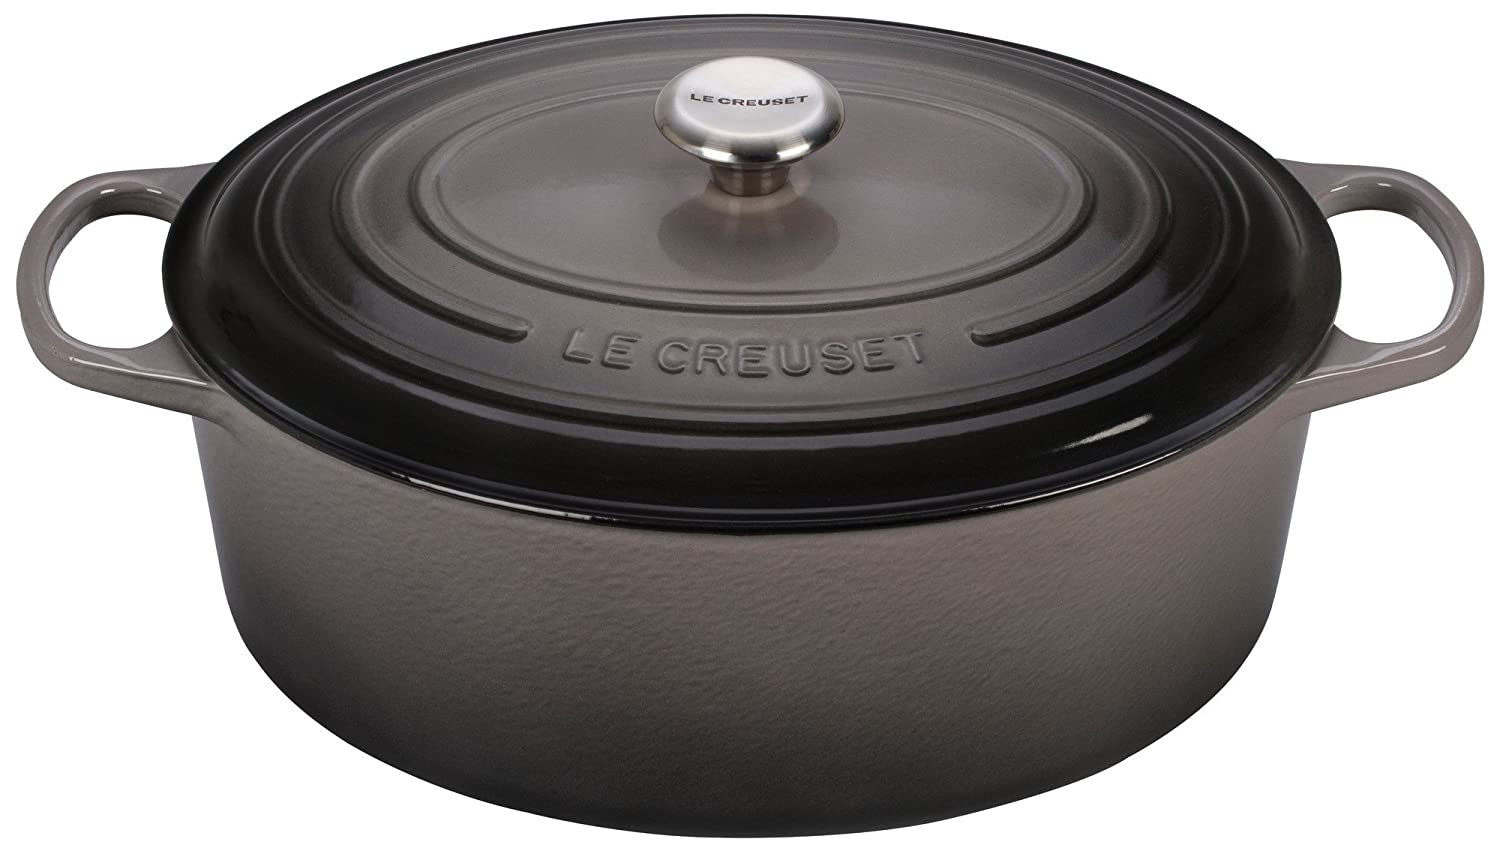 Le Creuset Signature Enameled Cast-Iron 9.5 Quart Oval French (Dutch) Oven, Oyster